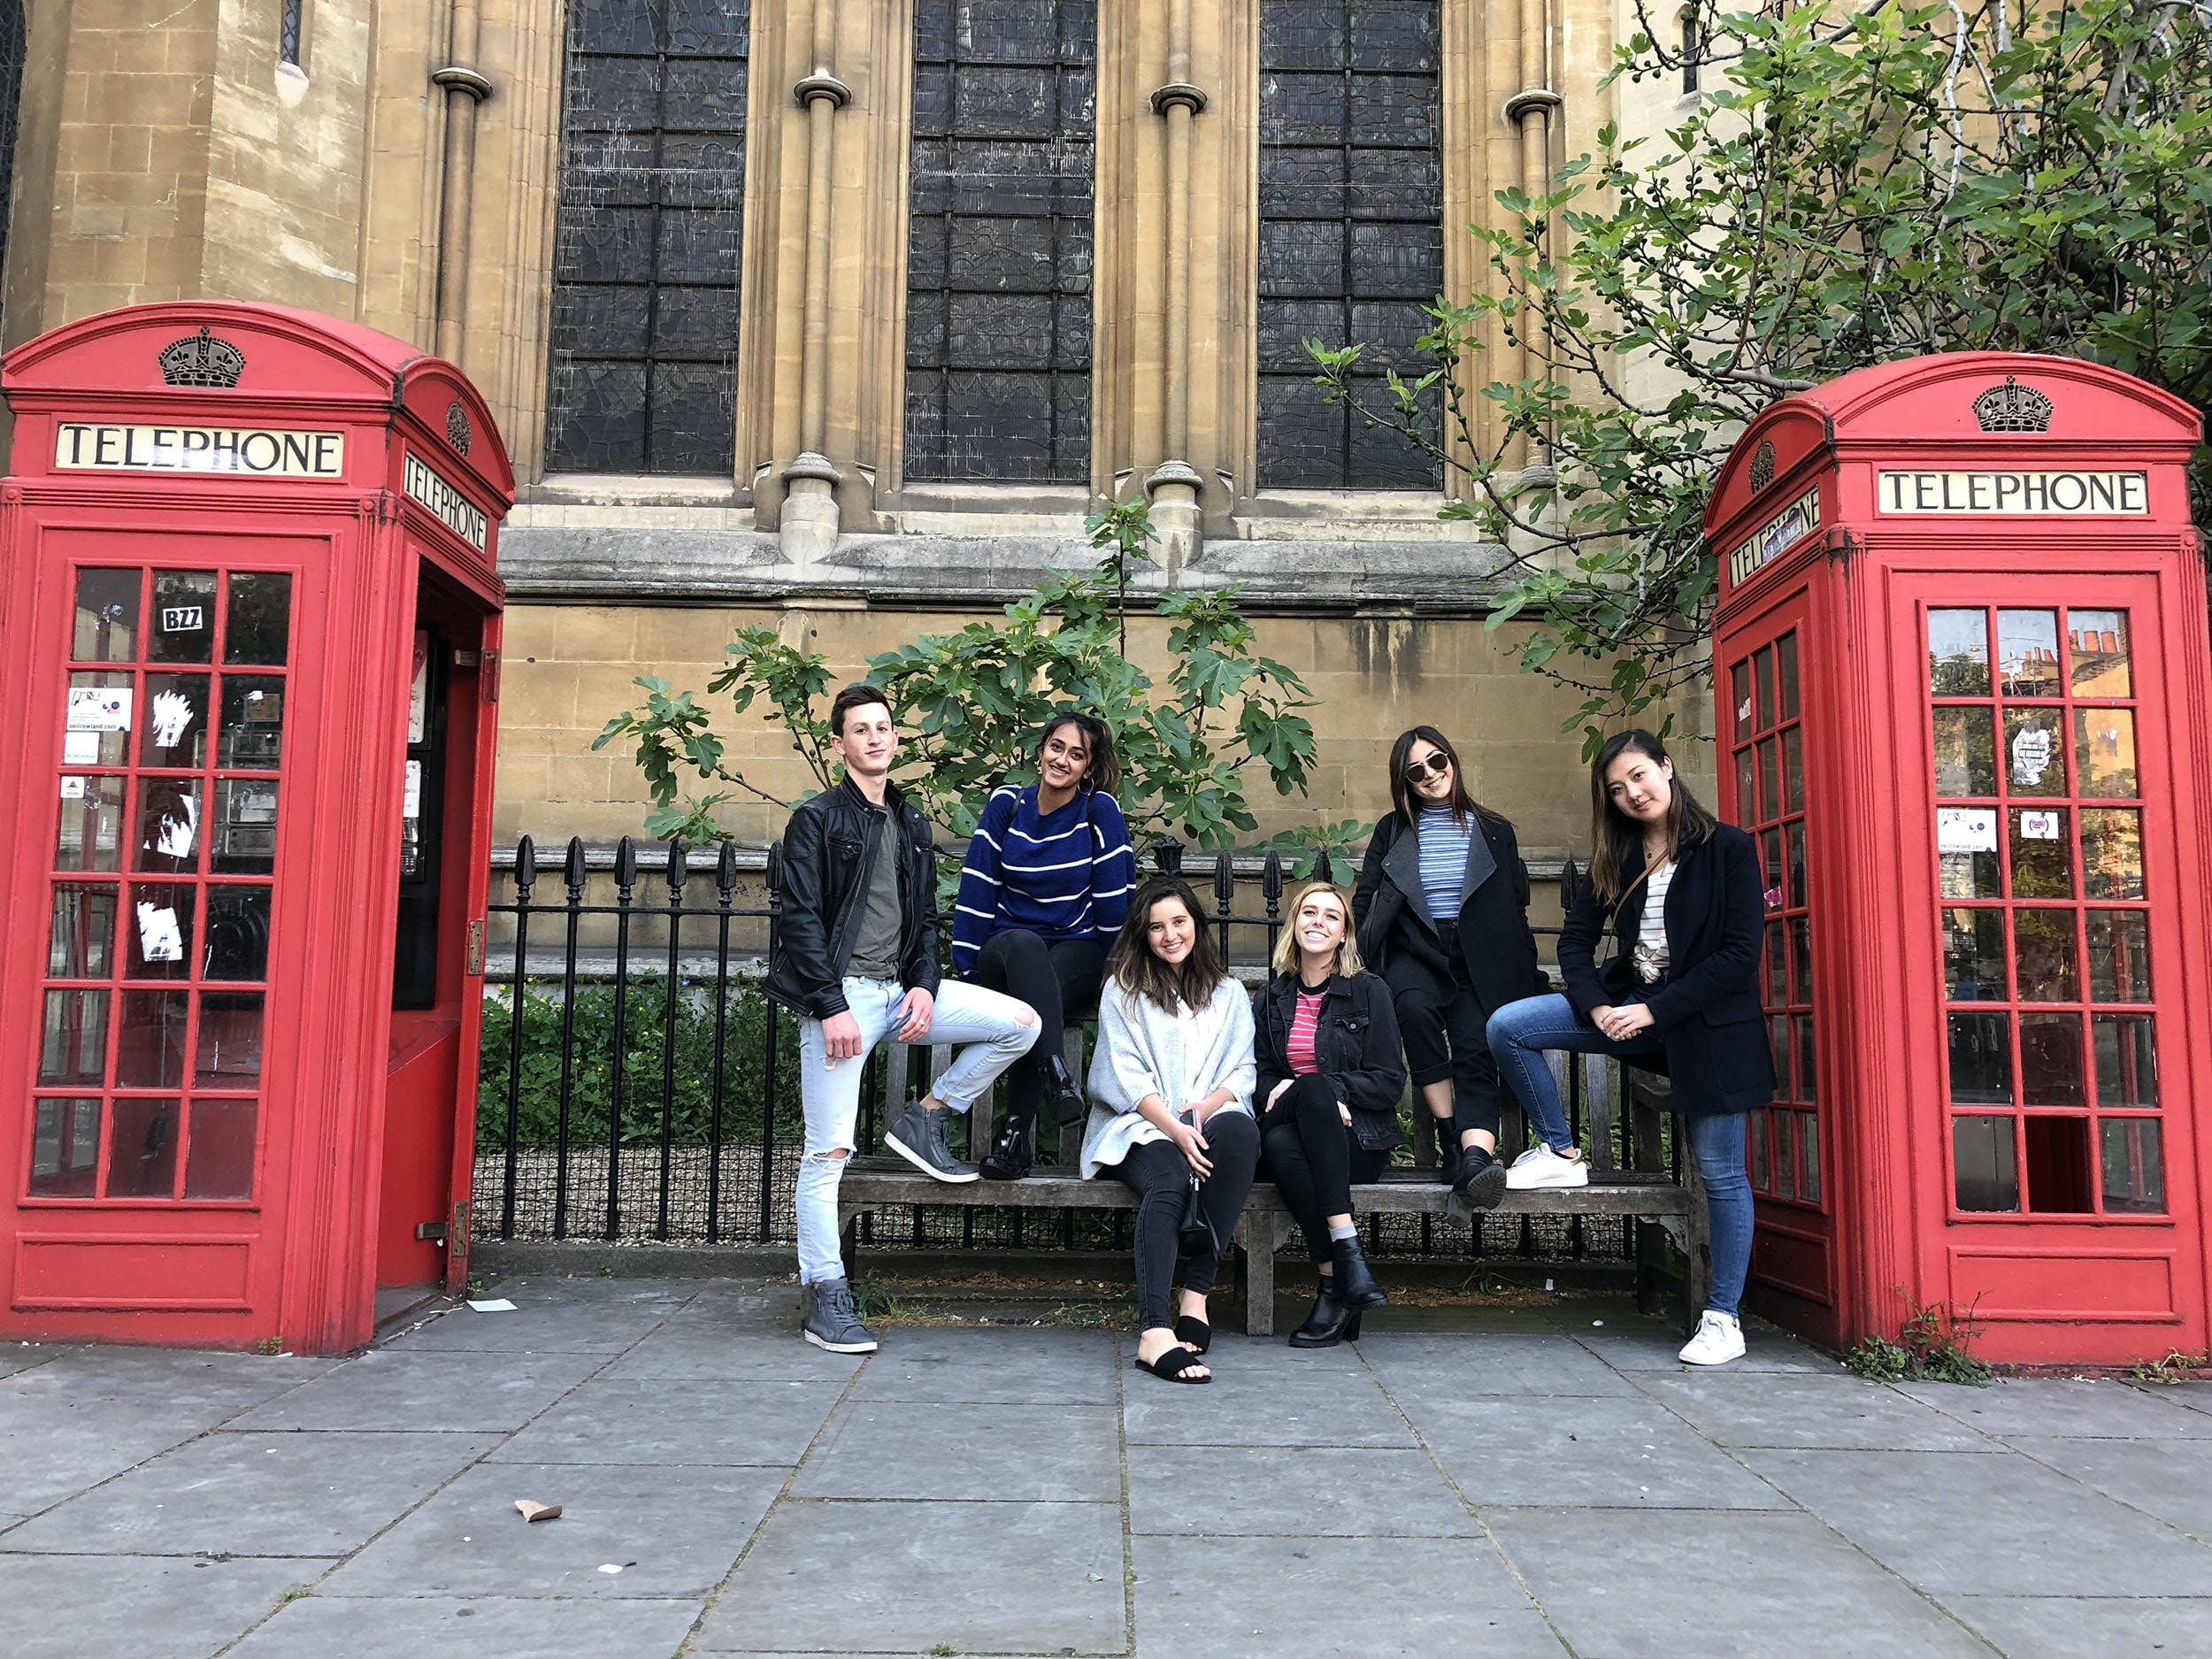 A group of students take a photo between two telephone booths in London